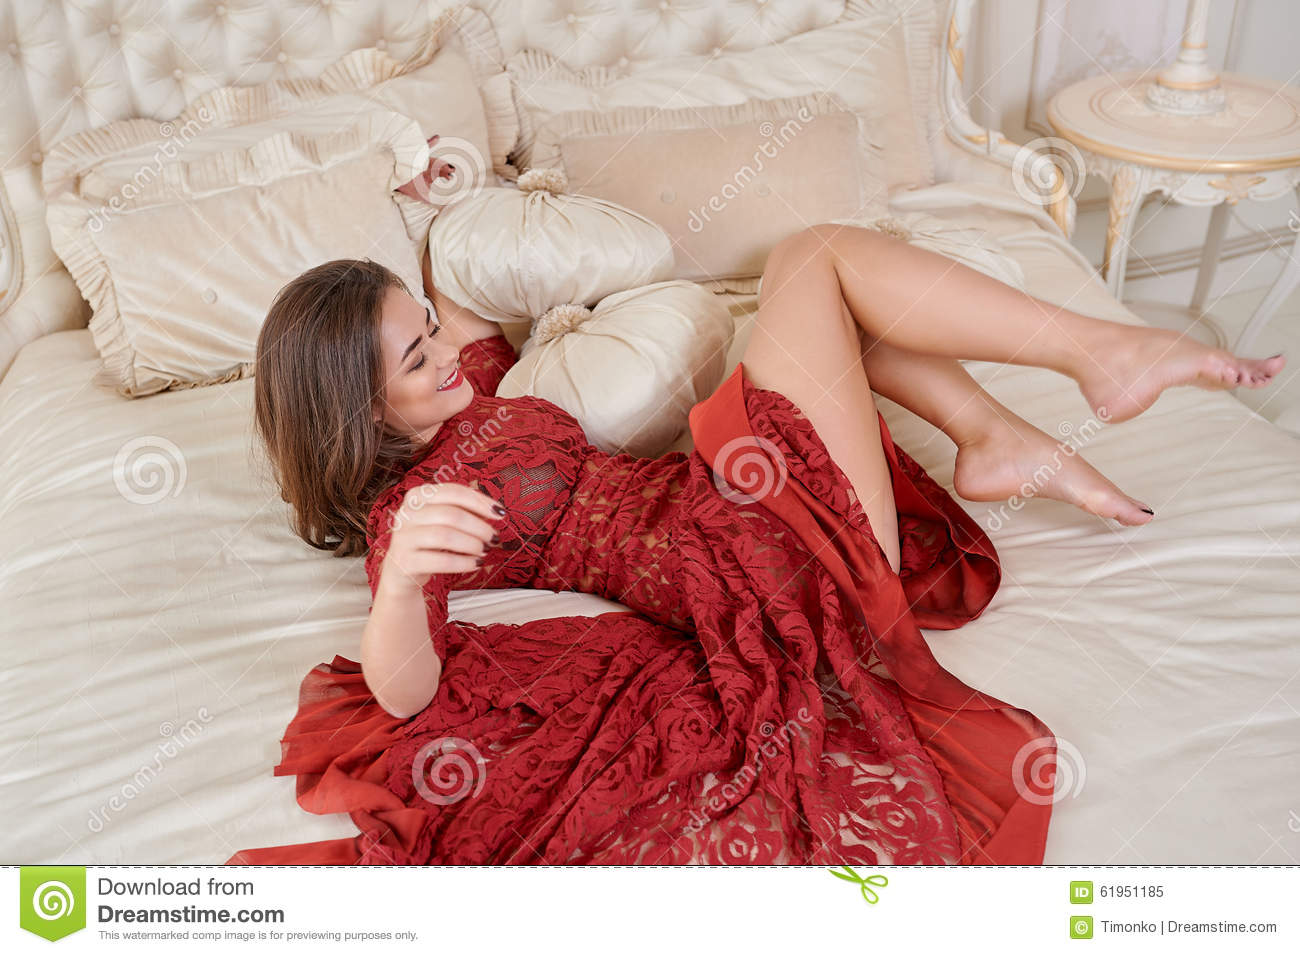 Red dress campaign bed